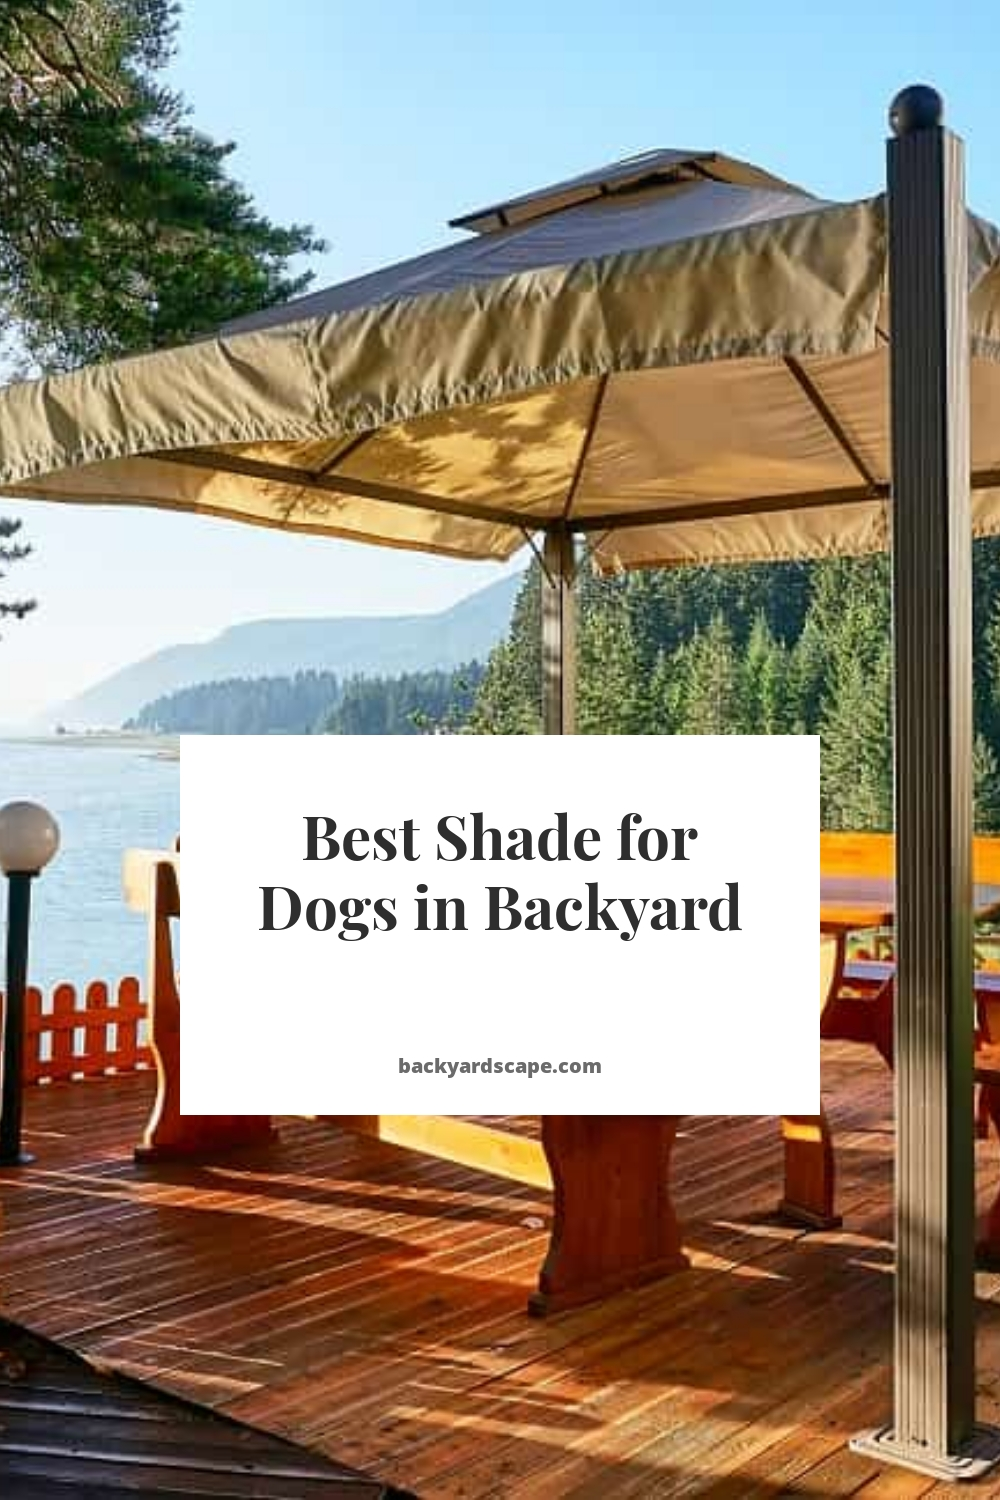 Best Shade for Dogs in Backyard